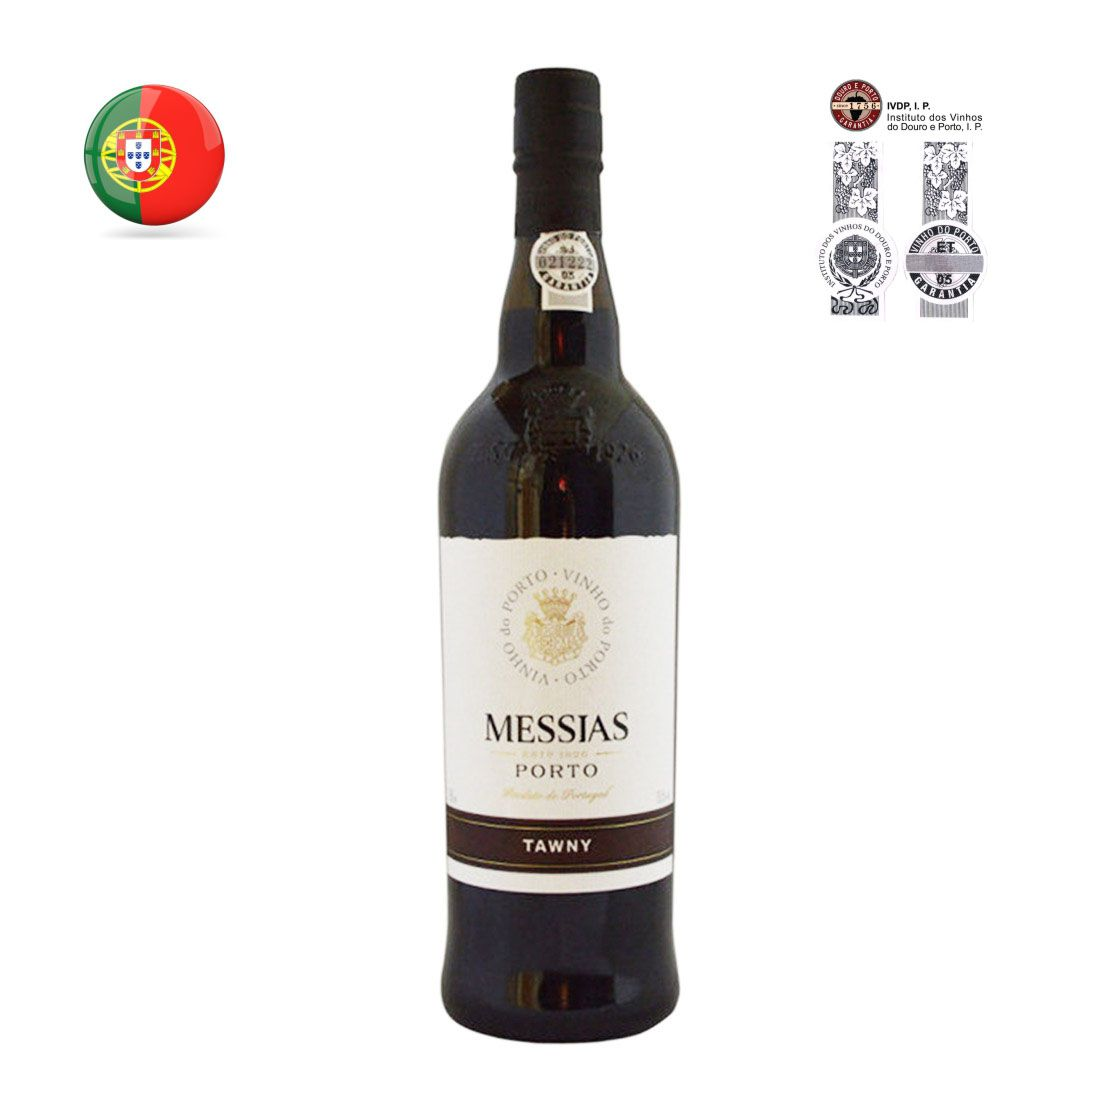 VINHO DO PORTO MESSIAS 750ML TAWNY